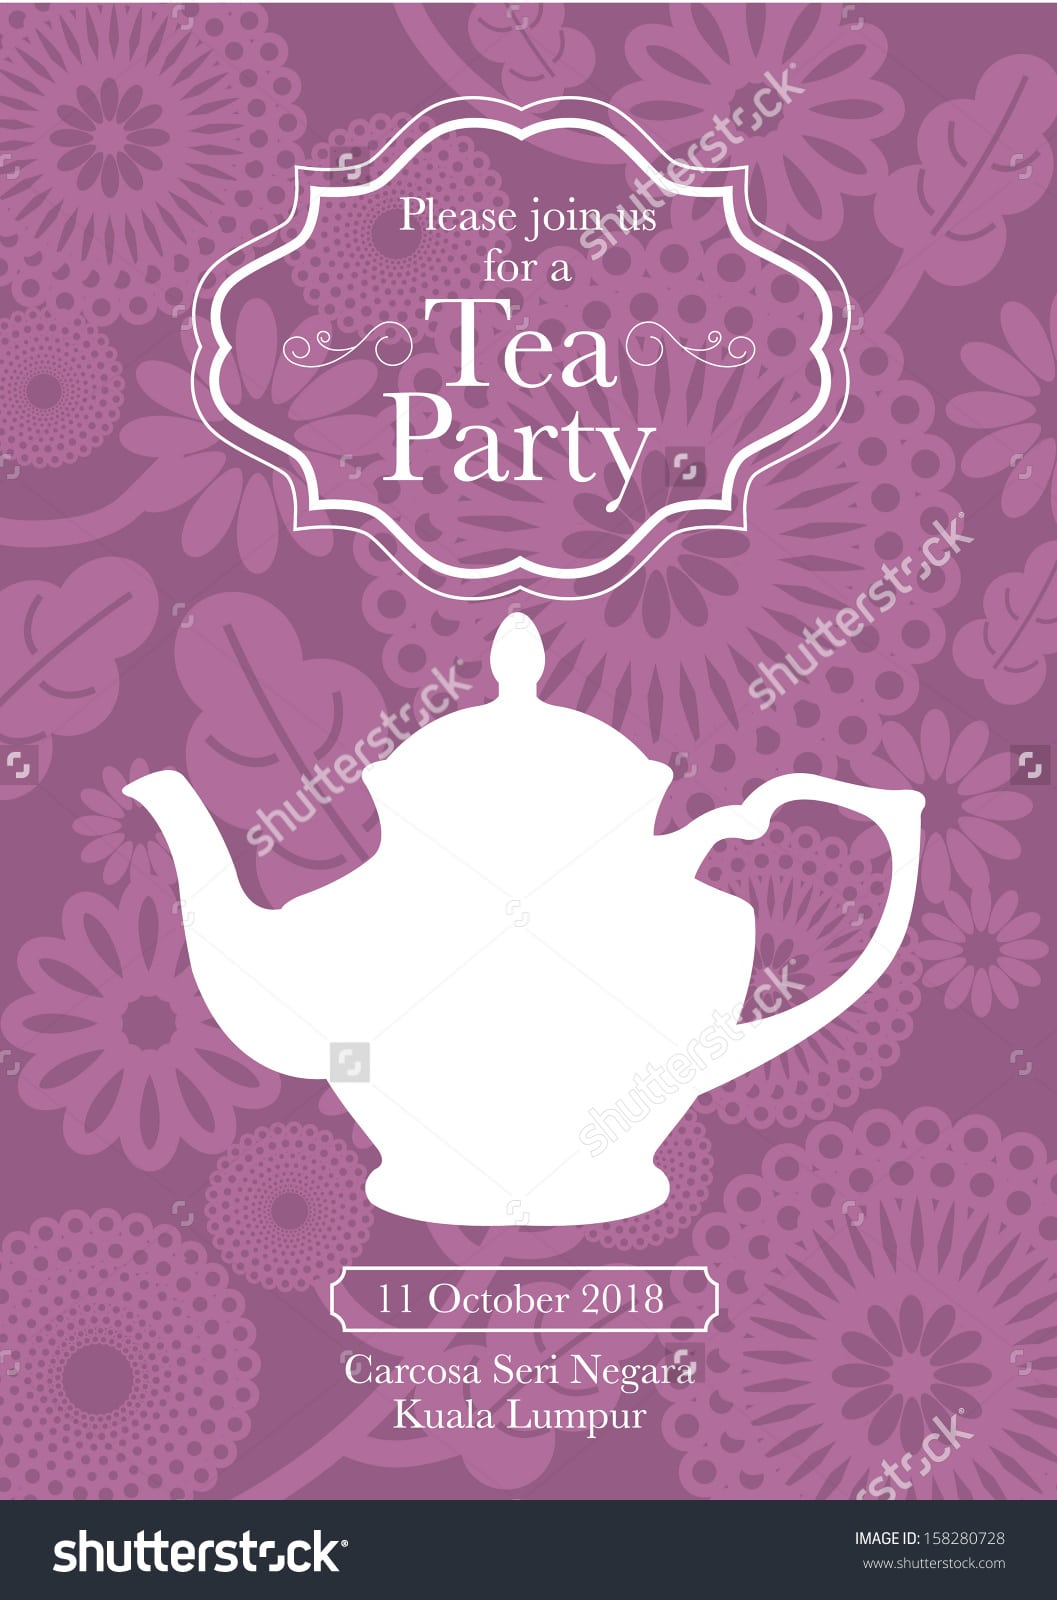 Tea Party Invitation Card Template Vectorillustration Stock Vector